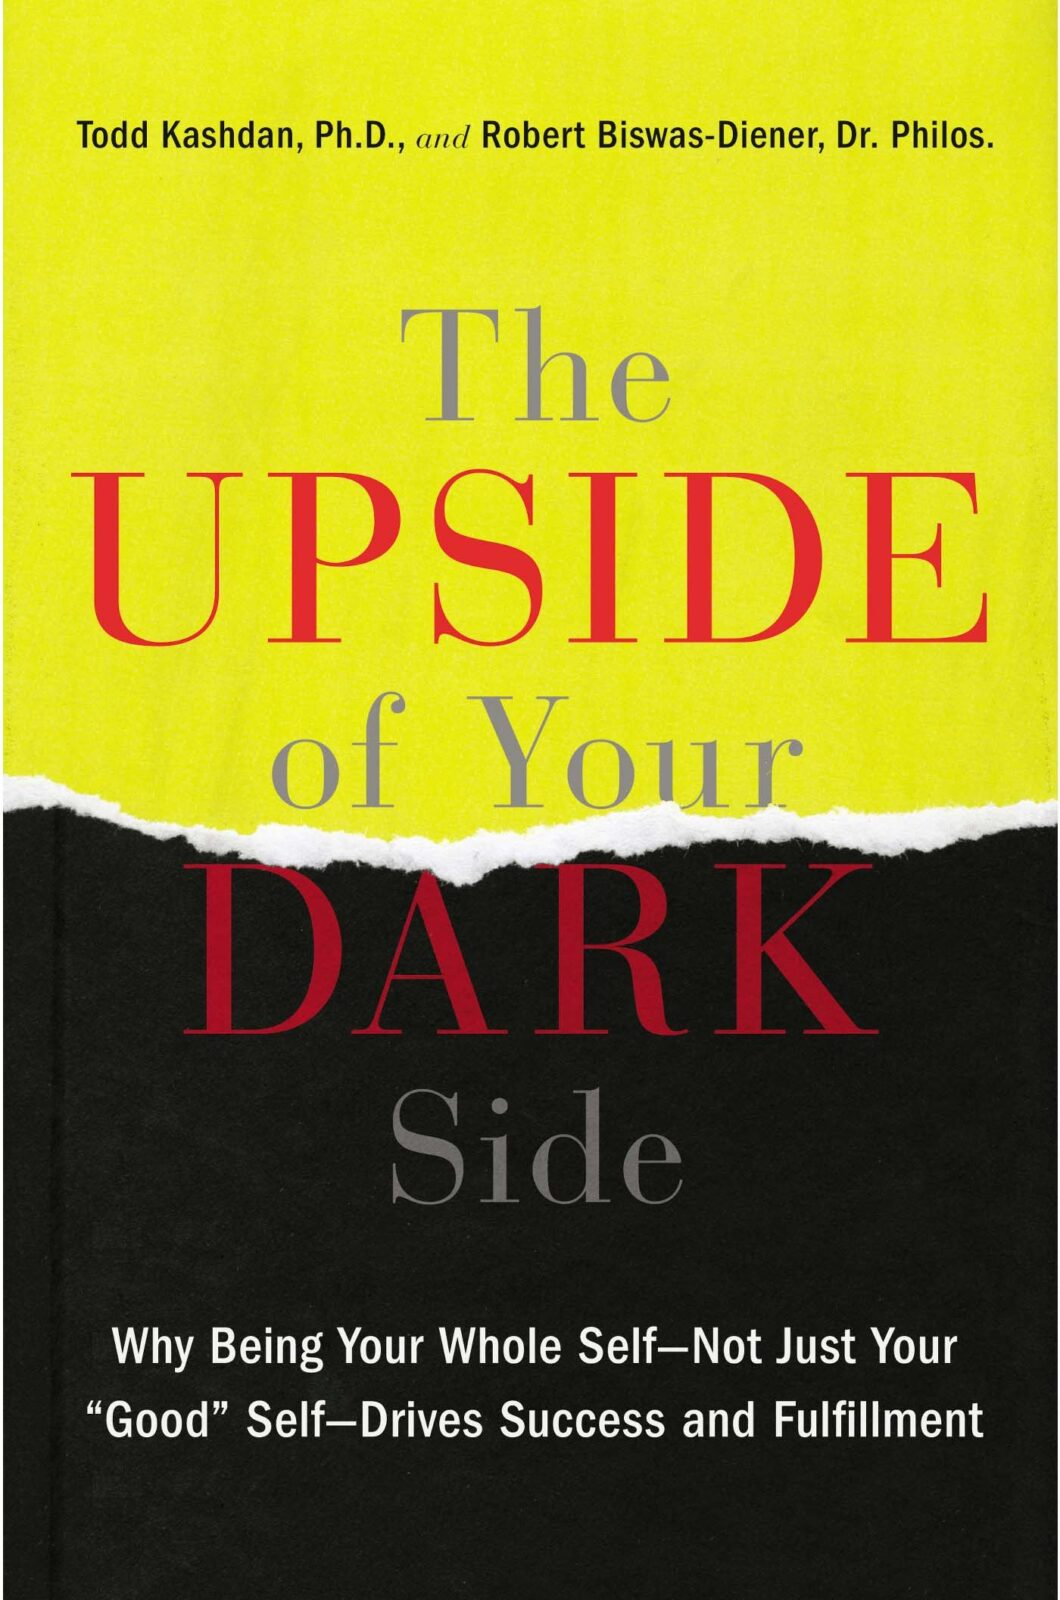 Book: The Upside of Your Dark Side